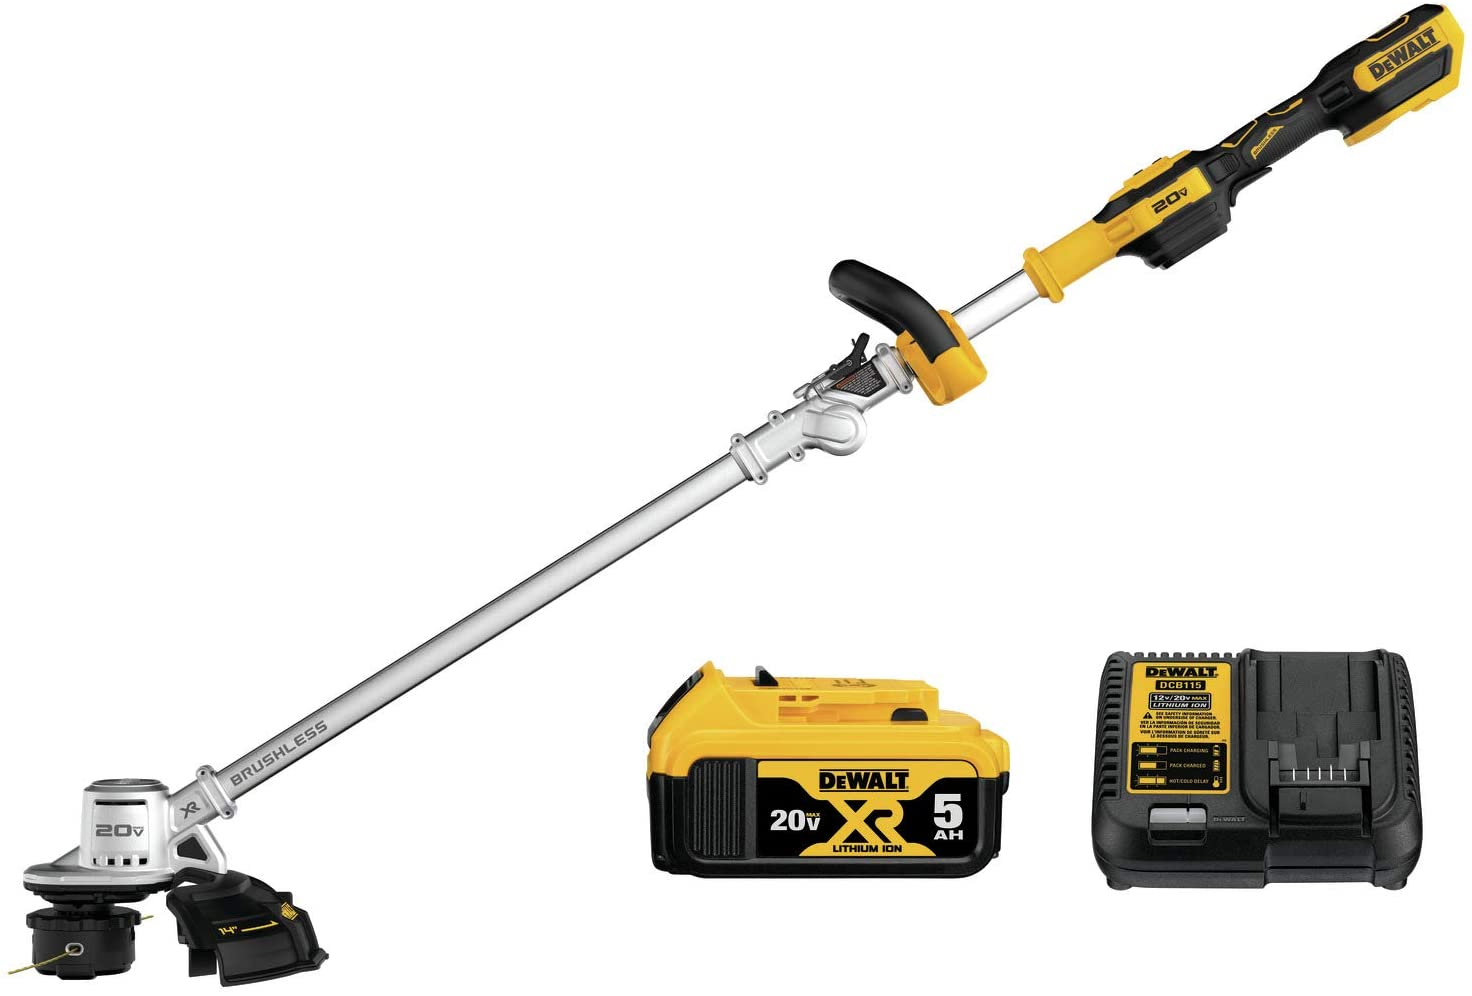 DEWALT DCST922P1 Black & Decker Lawn Trimmer BRUSHLESS W/5AH PK 20V, Yellow/Black